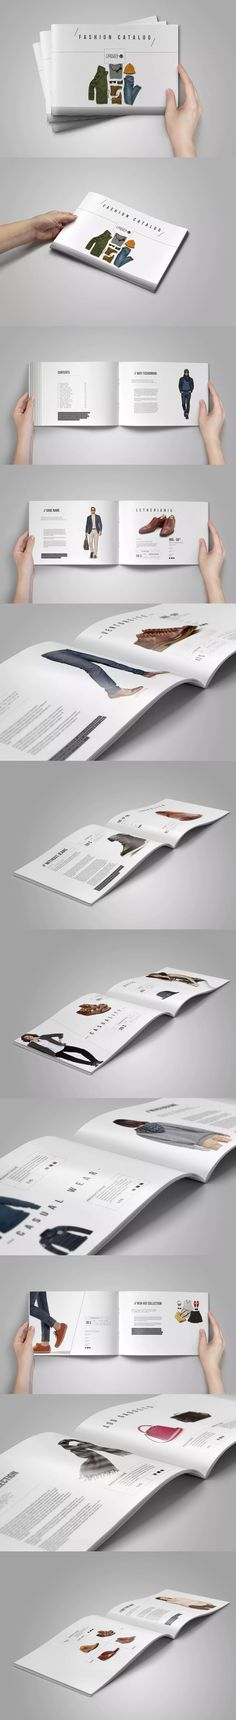 Horizontal Product Catalog Template InDesign INDD - A4 and Letter Size